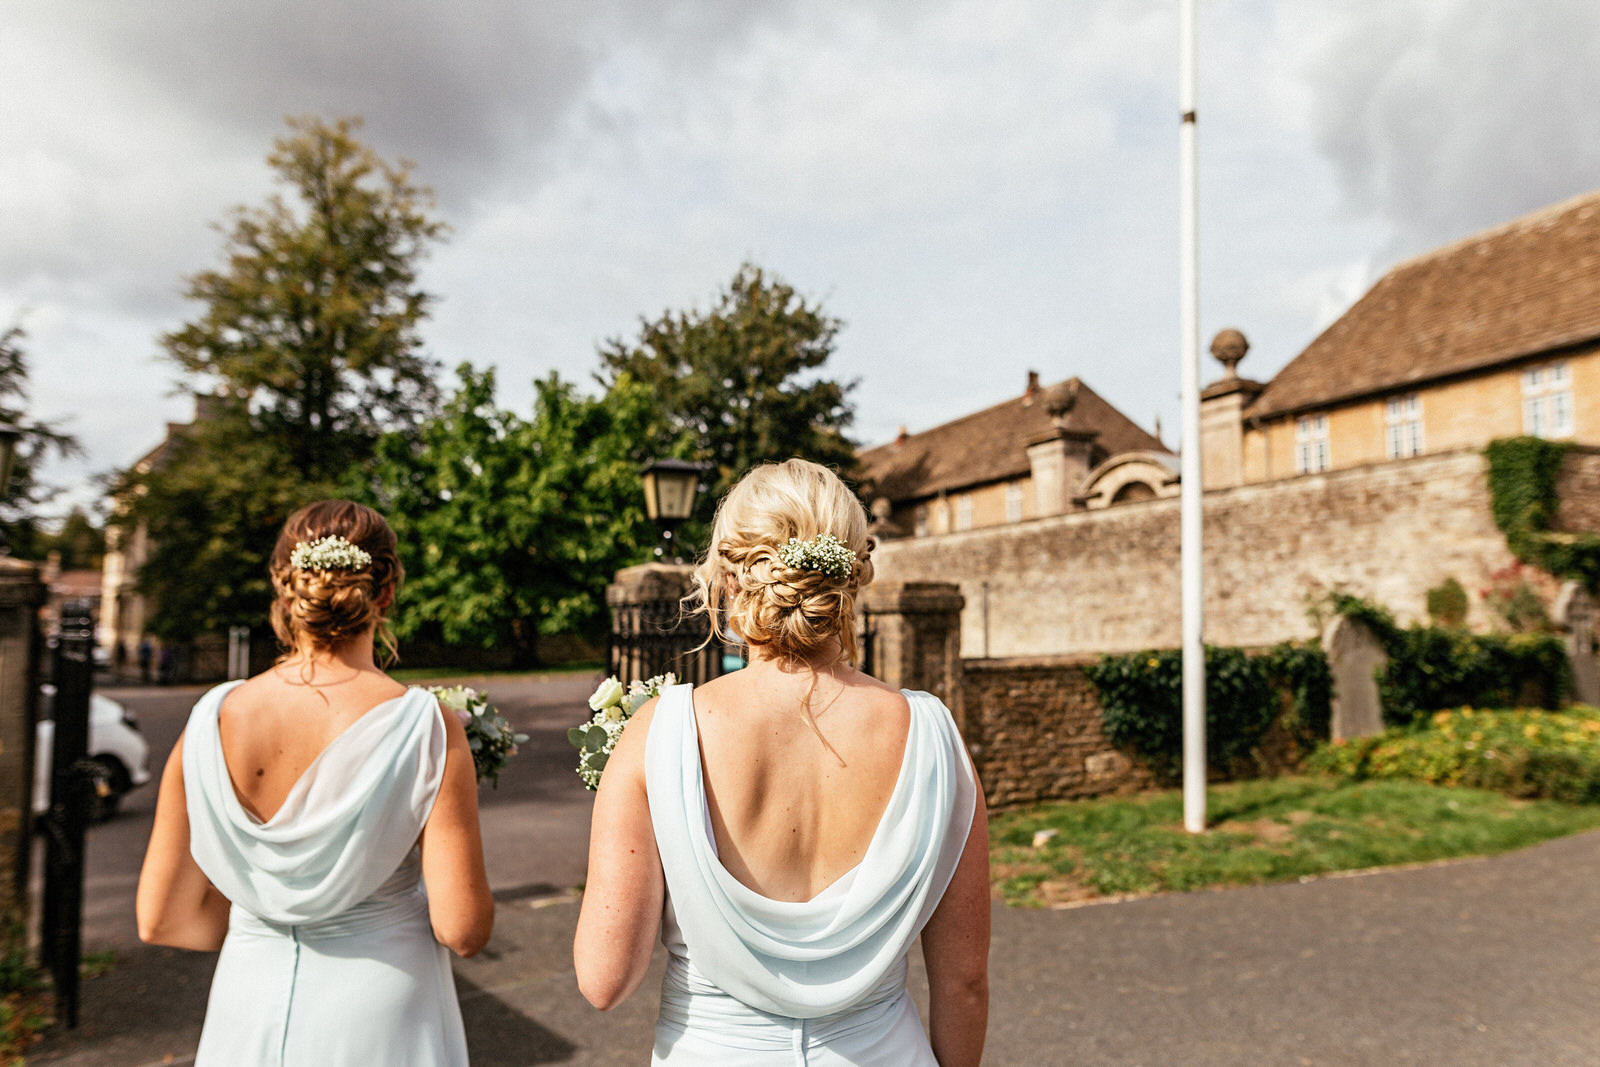 Winkworth-Farm-Wedding-Photographer-031.jpg